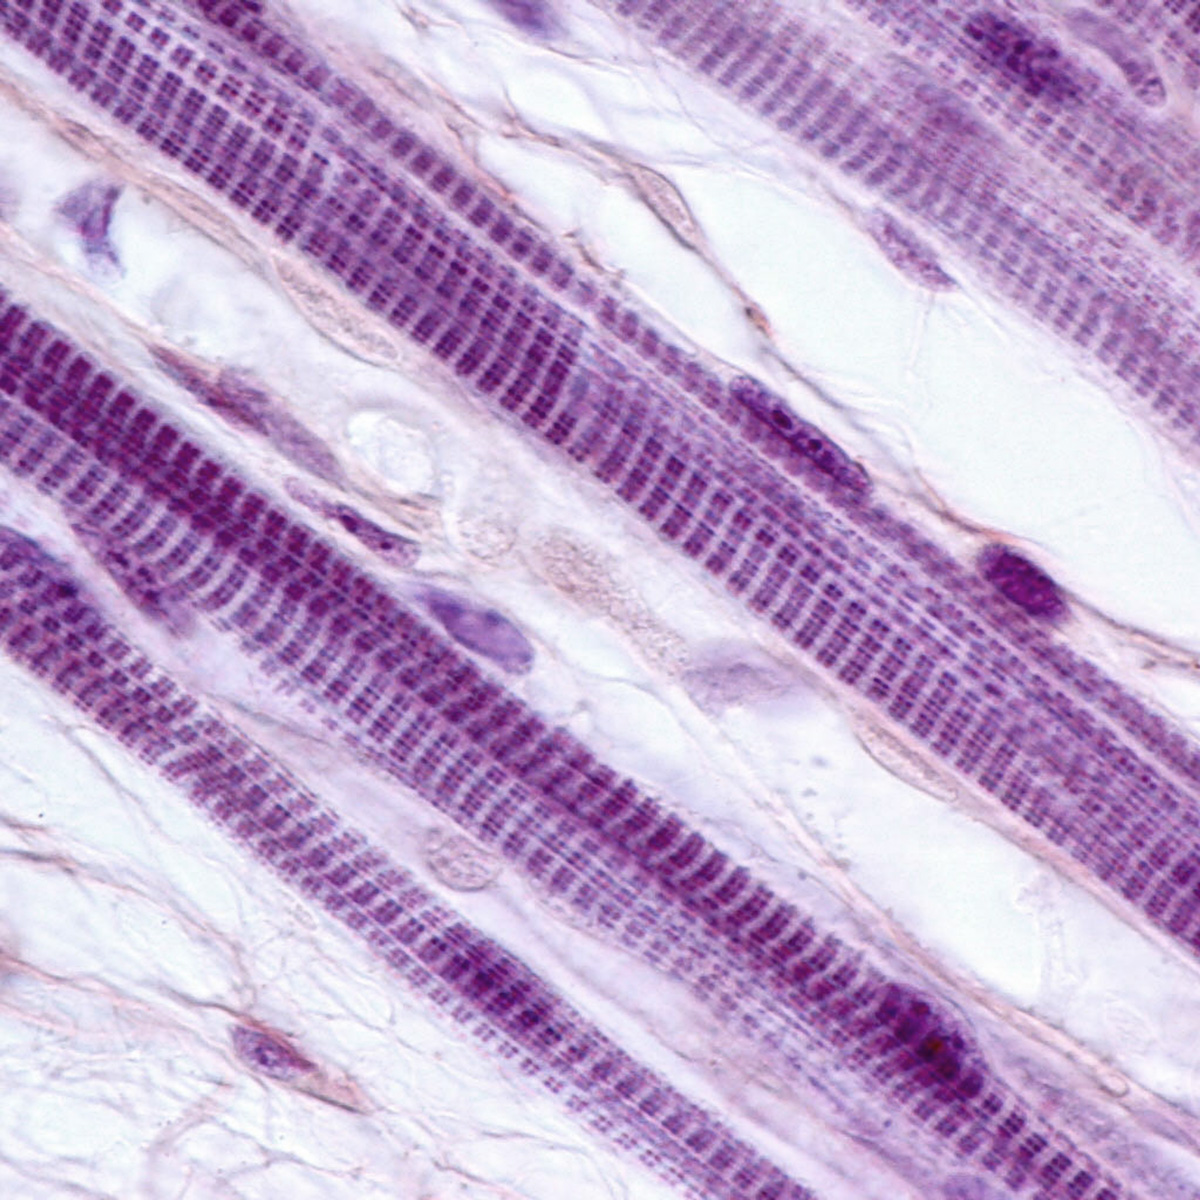 Skeletal muscle fibers (Shutterstock)